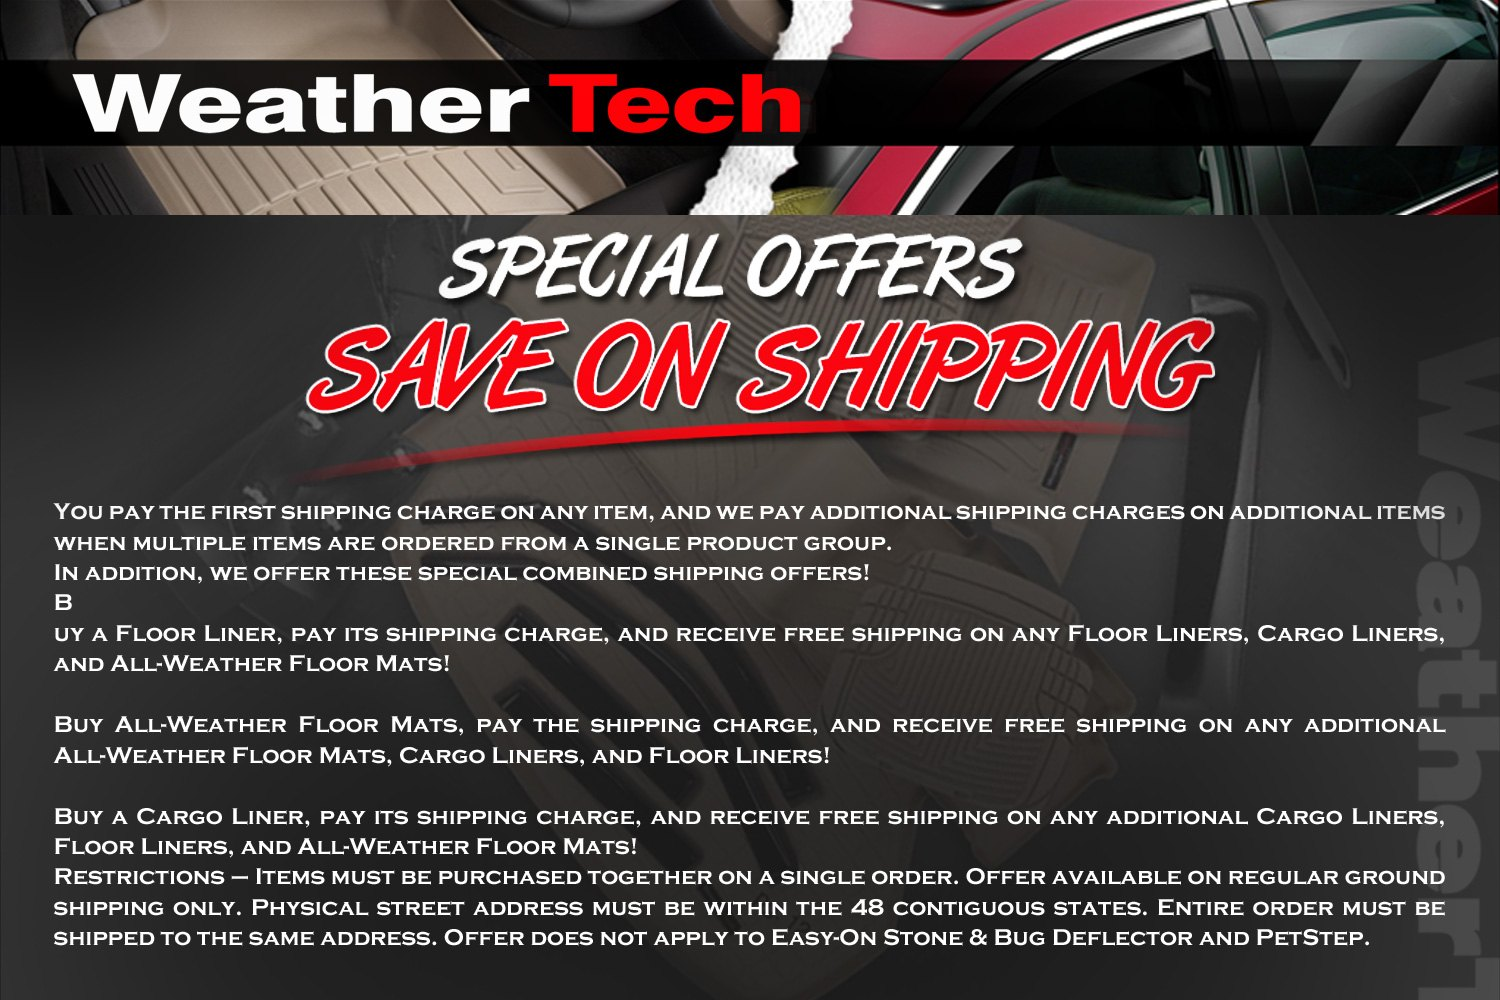 weathertech coupons and codes